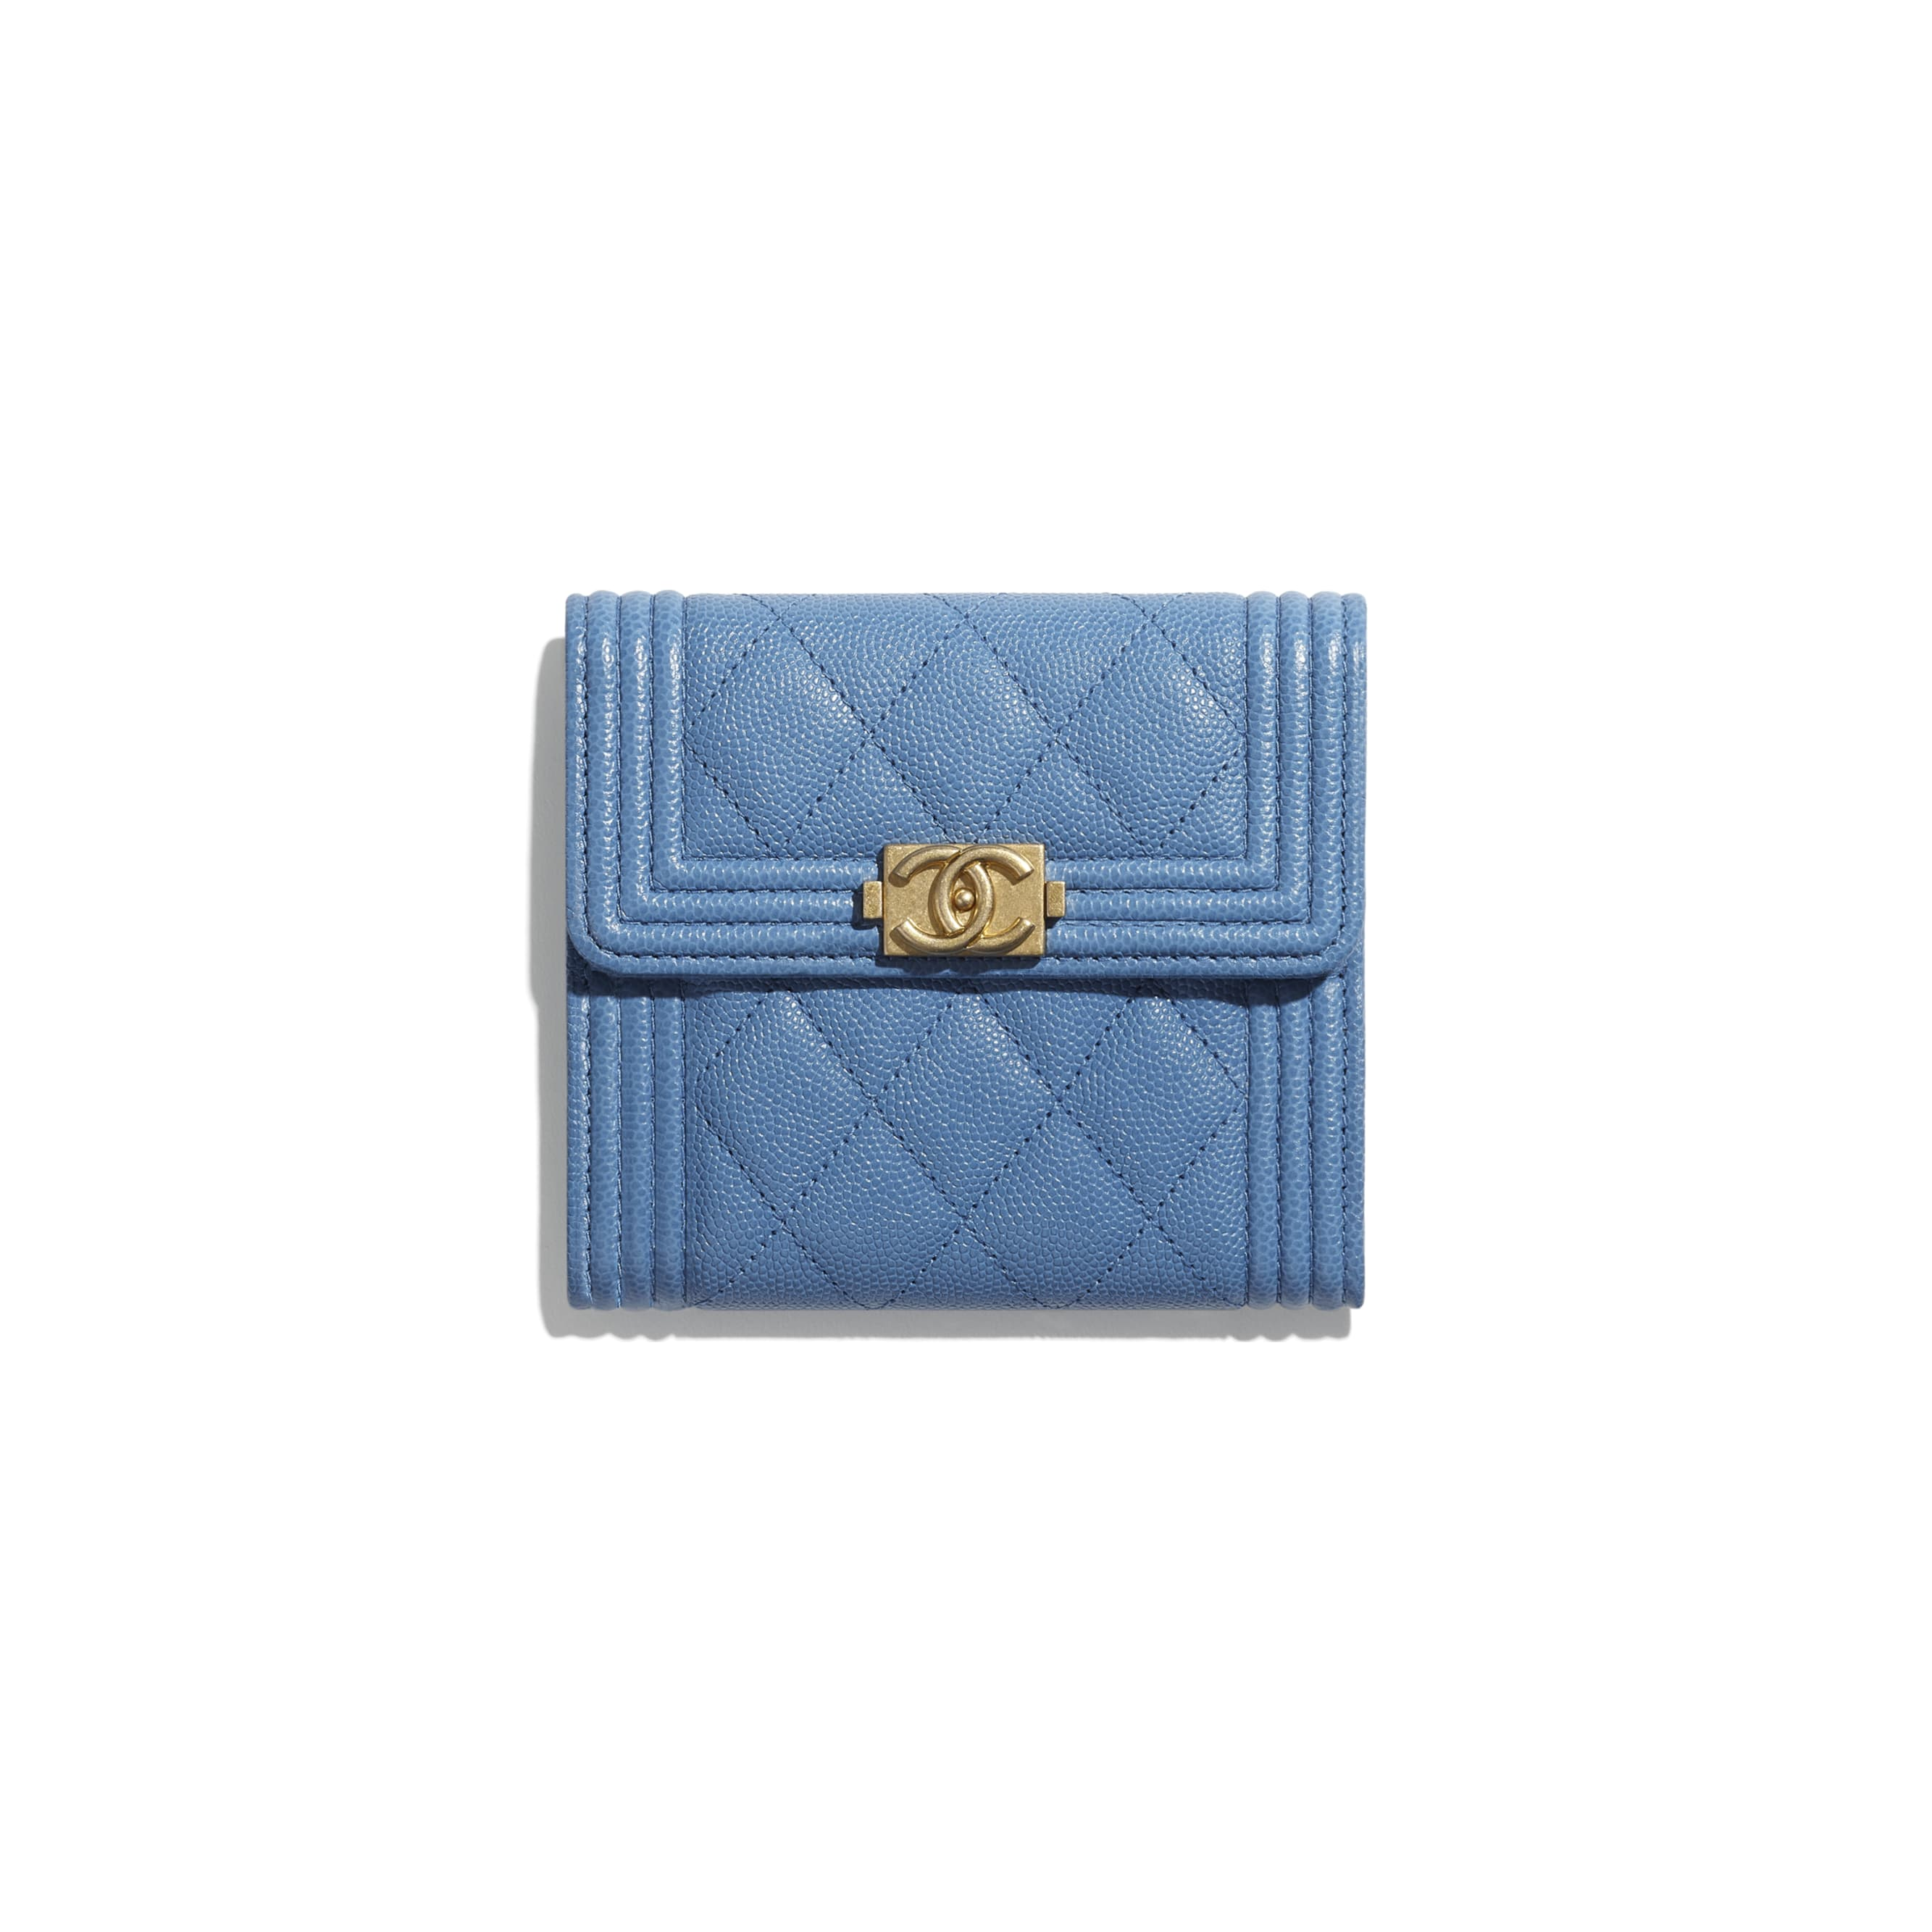 BOY CHANEL Small Flap Wallet - Blue - Grained Calfskin & Gold-Tone Metal - CHANEL - Default view - see standard sized version